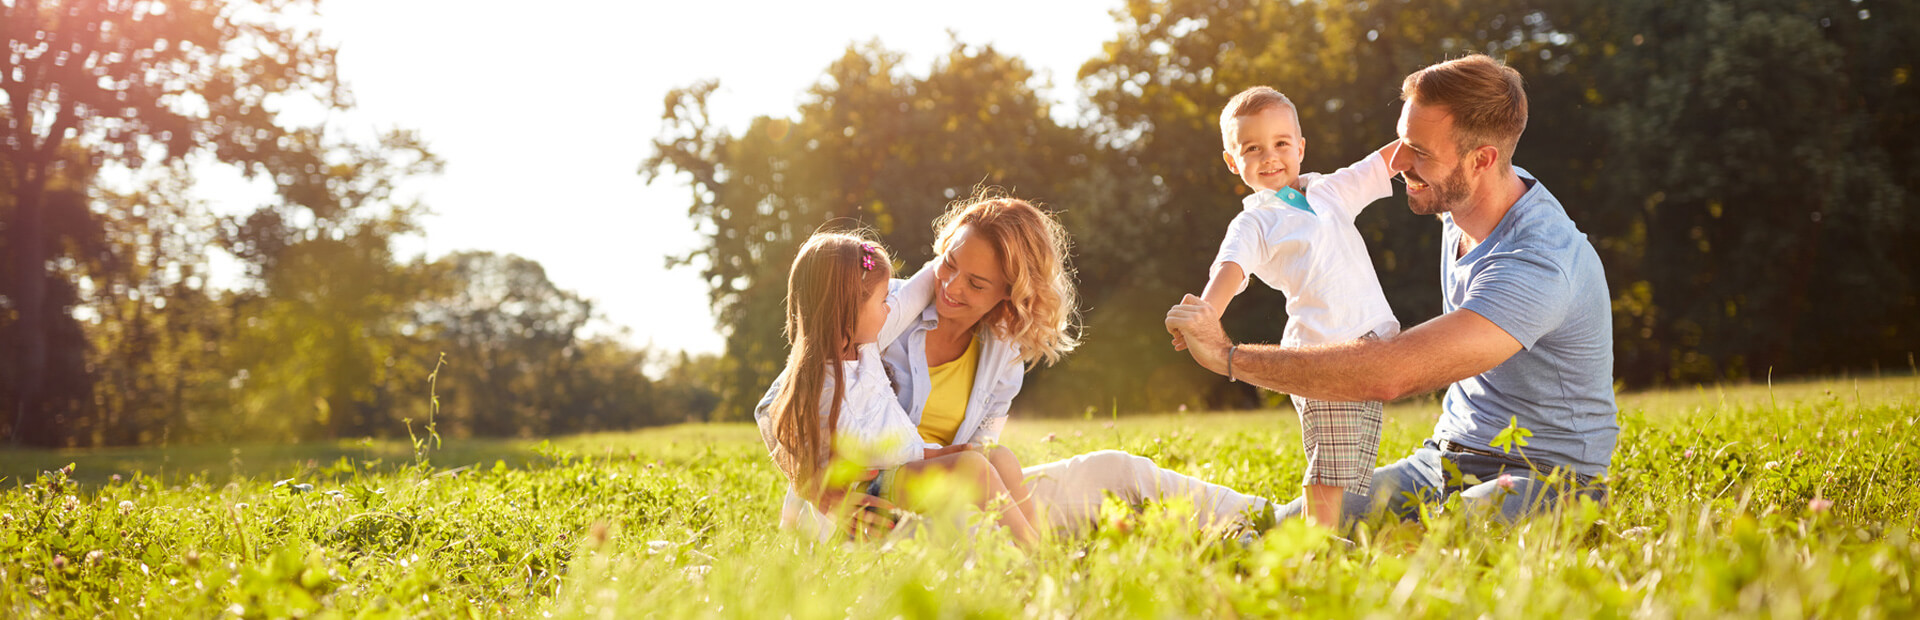 Dermatology Care for Families